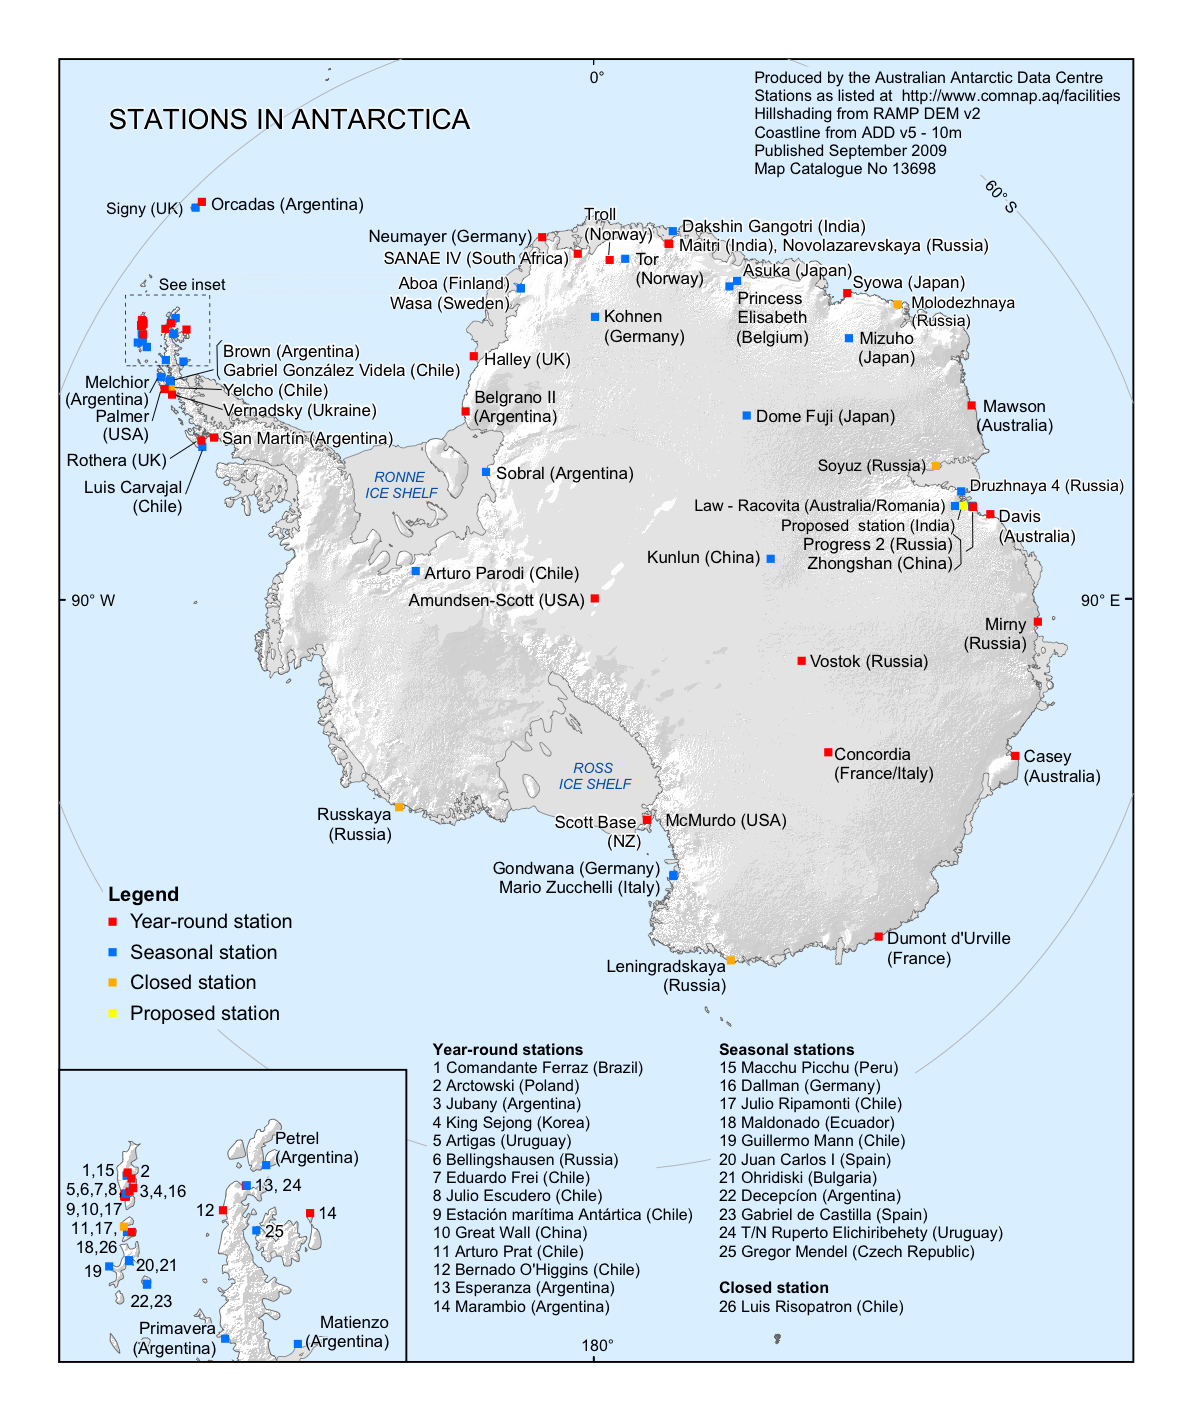 Stations in Antarctica 2009